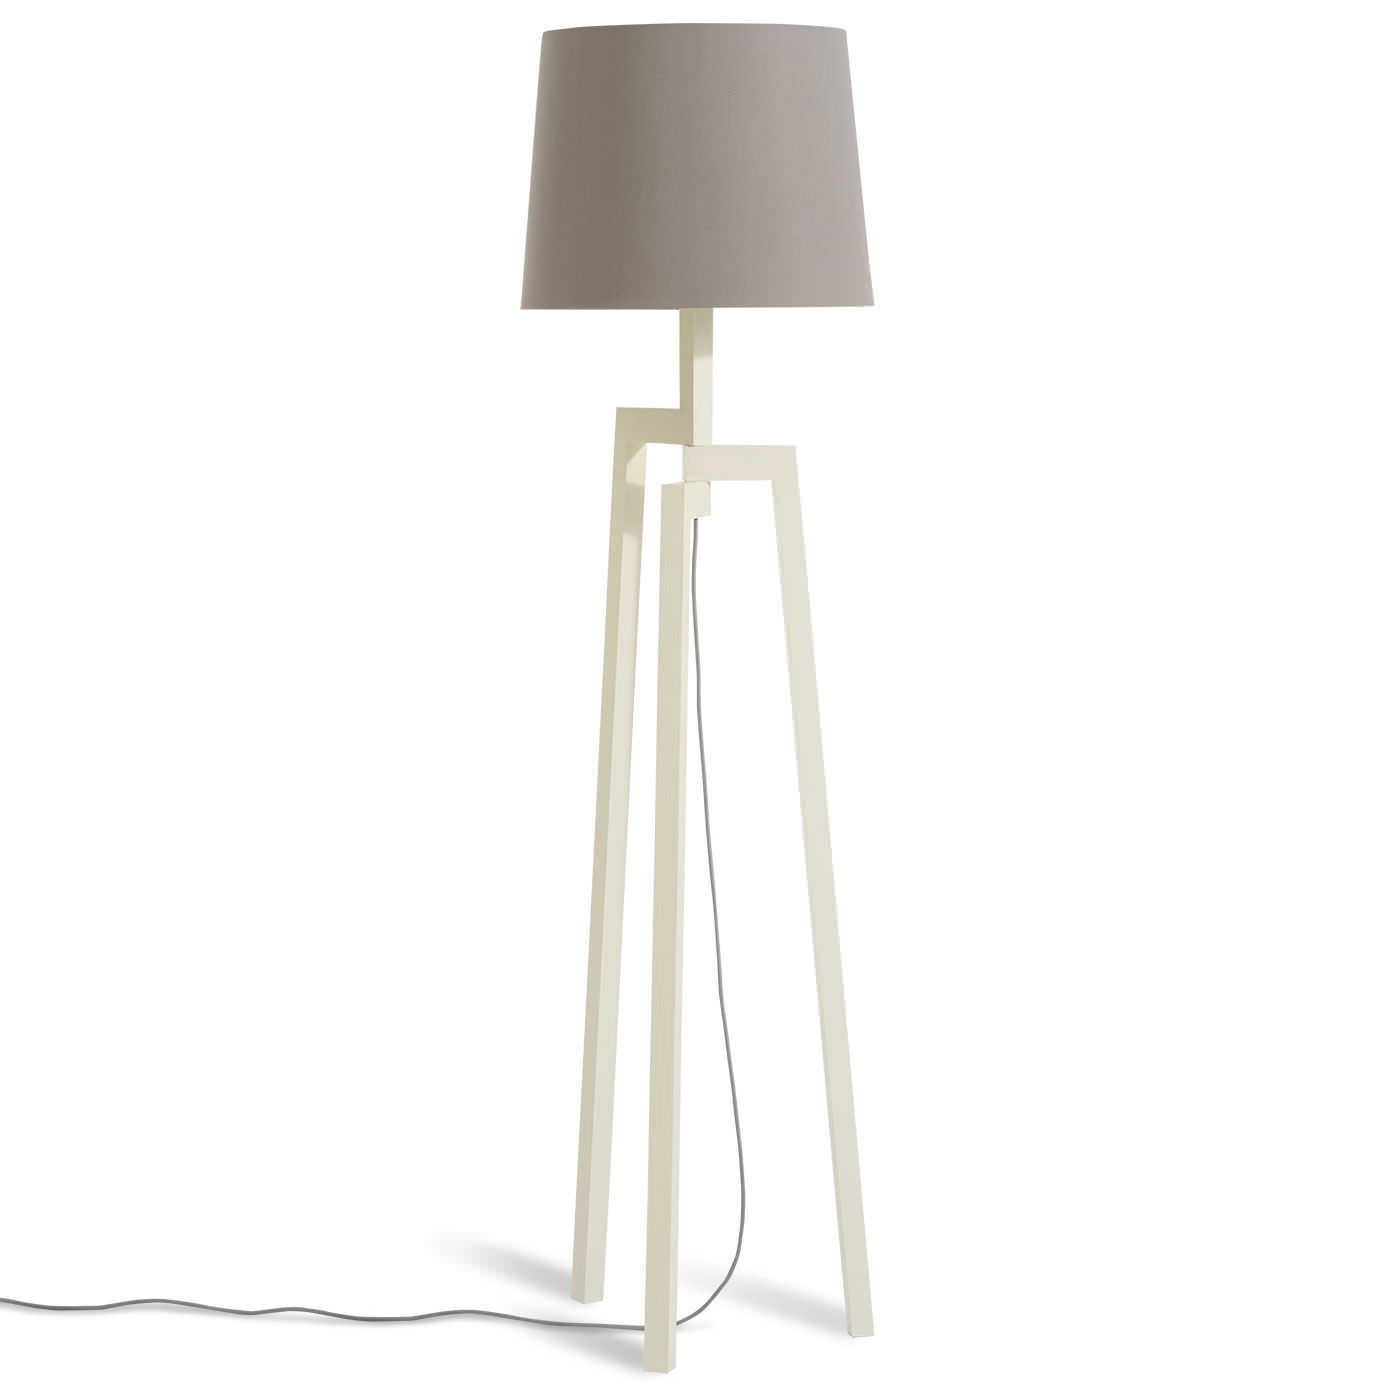 Floor Standing Lamp Stilt Blu Dot